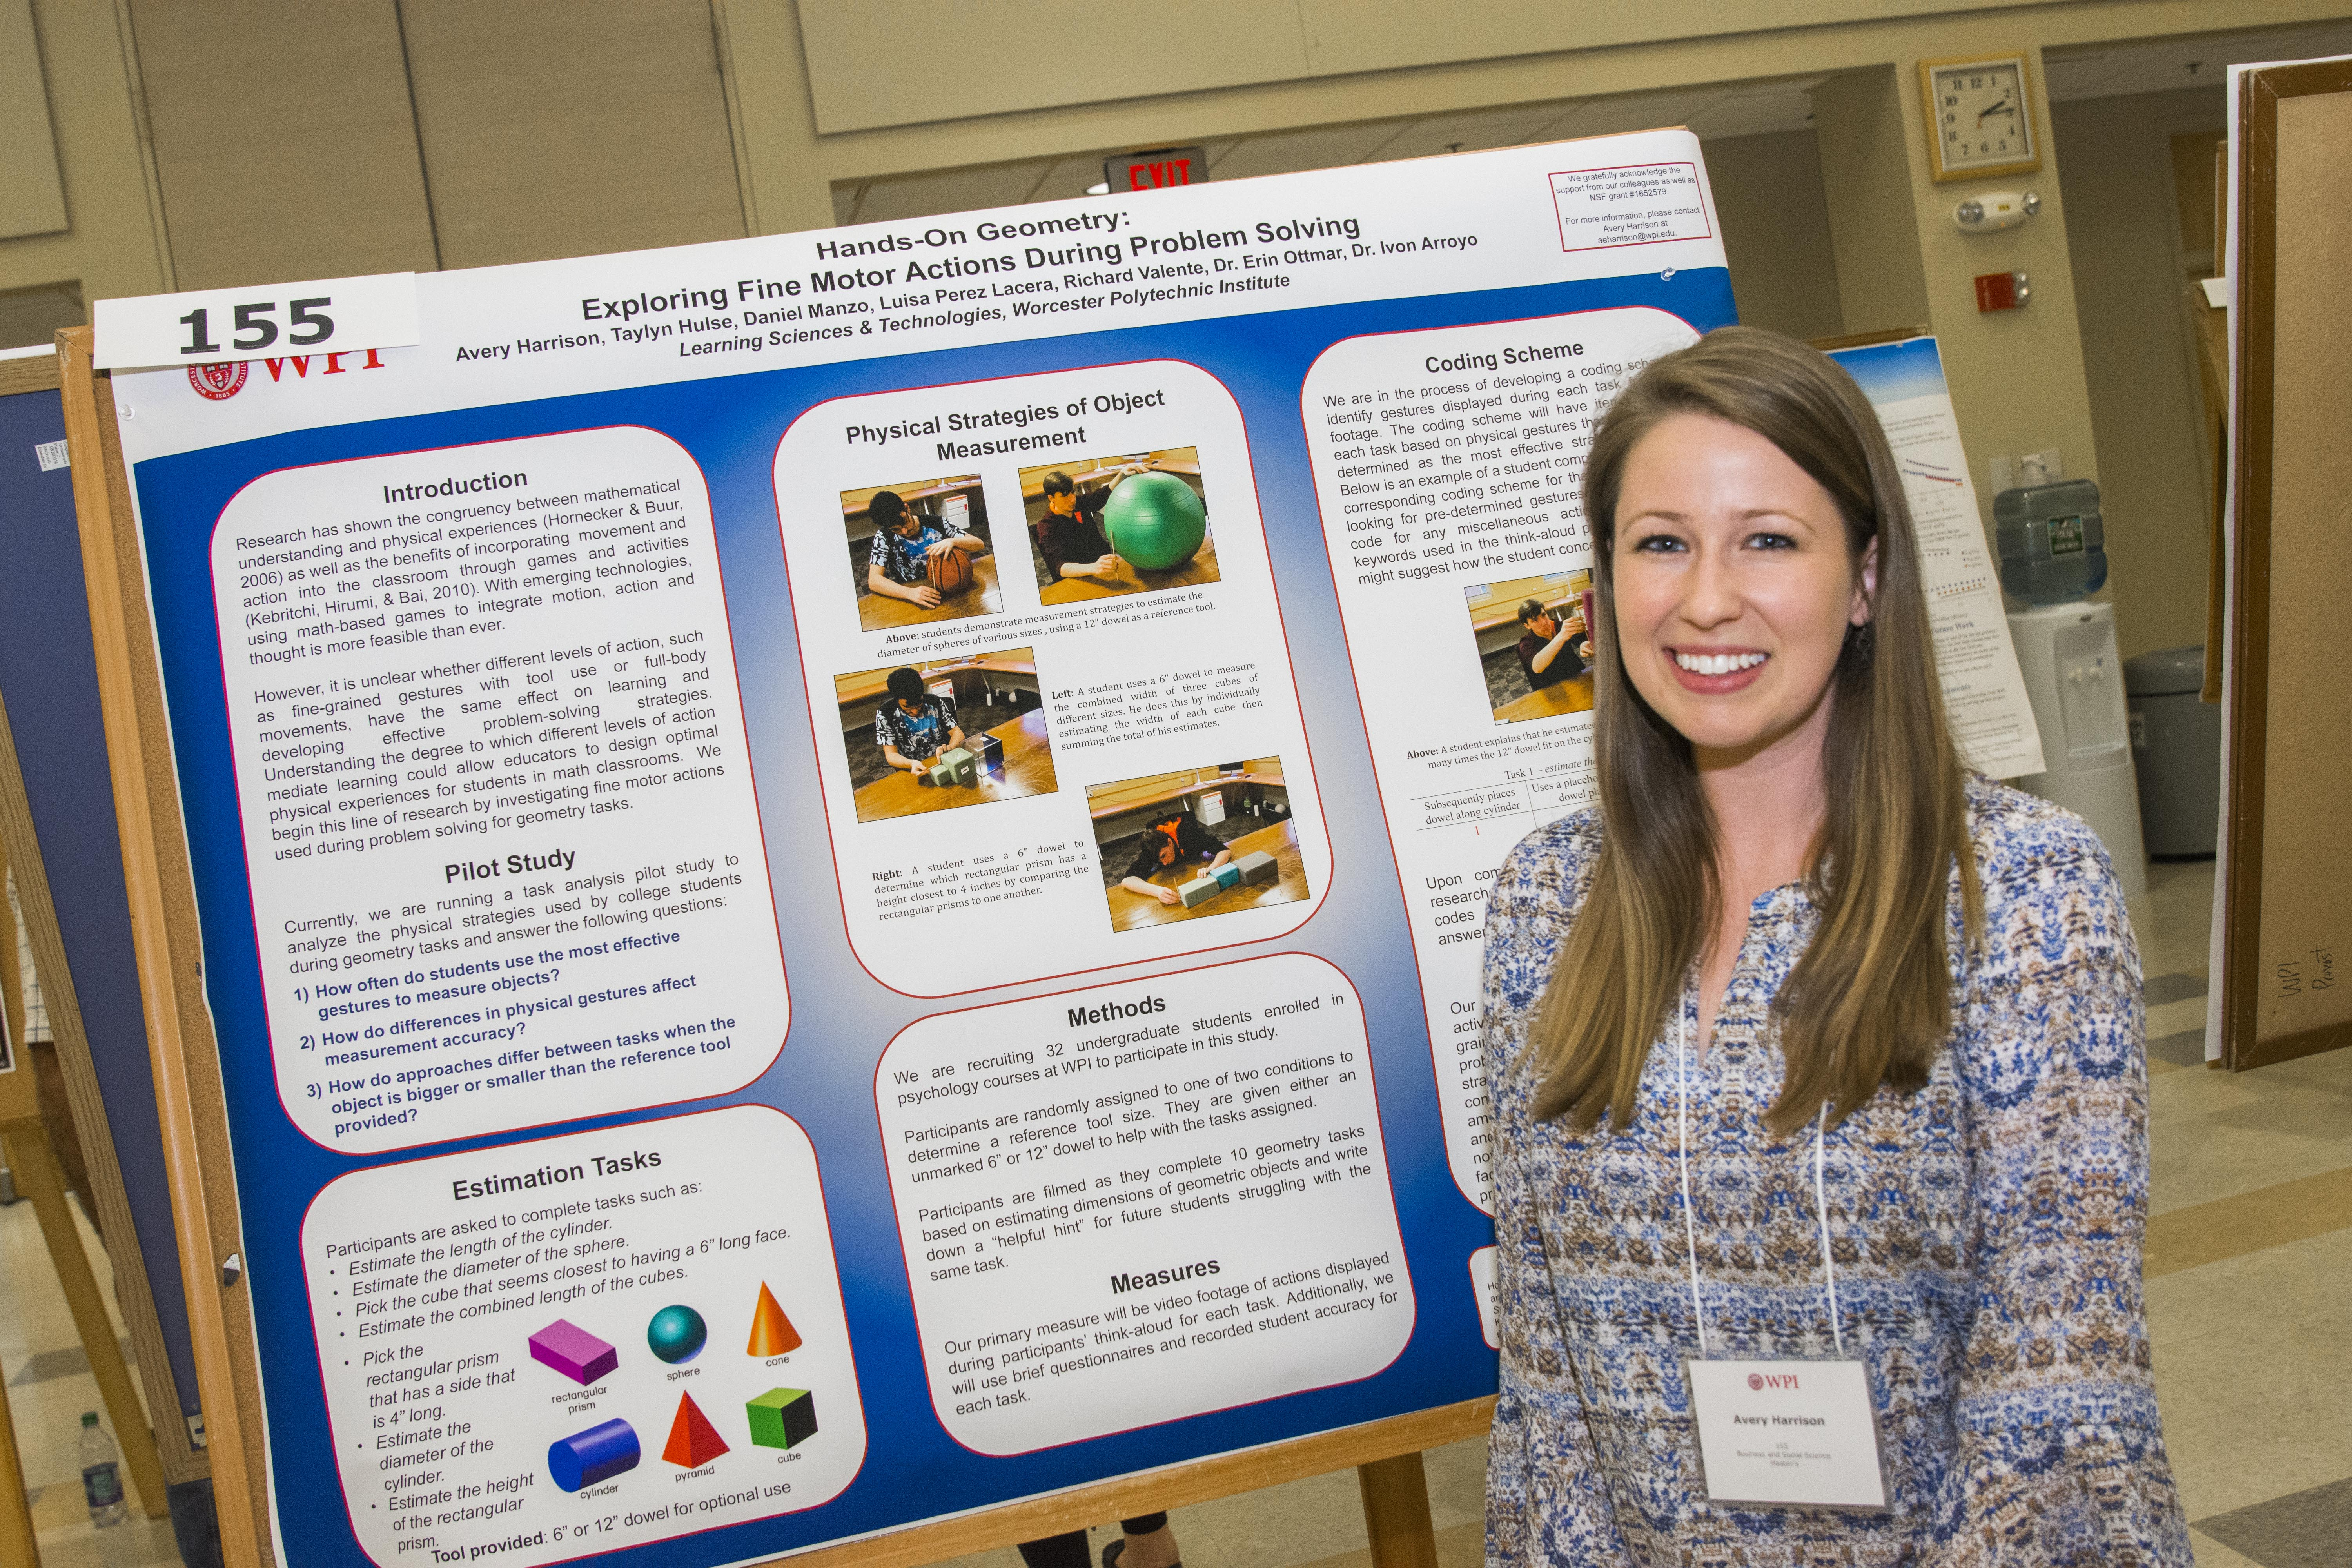 Graduate Research presentation